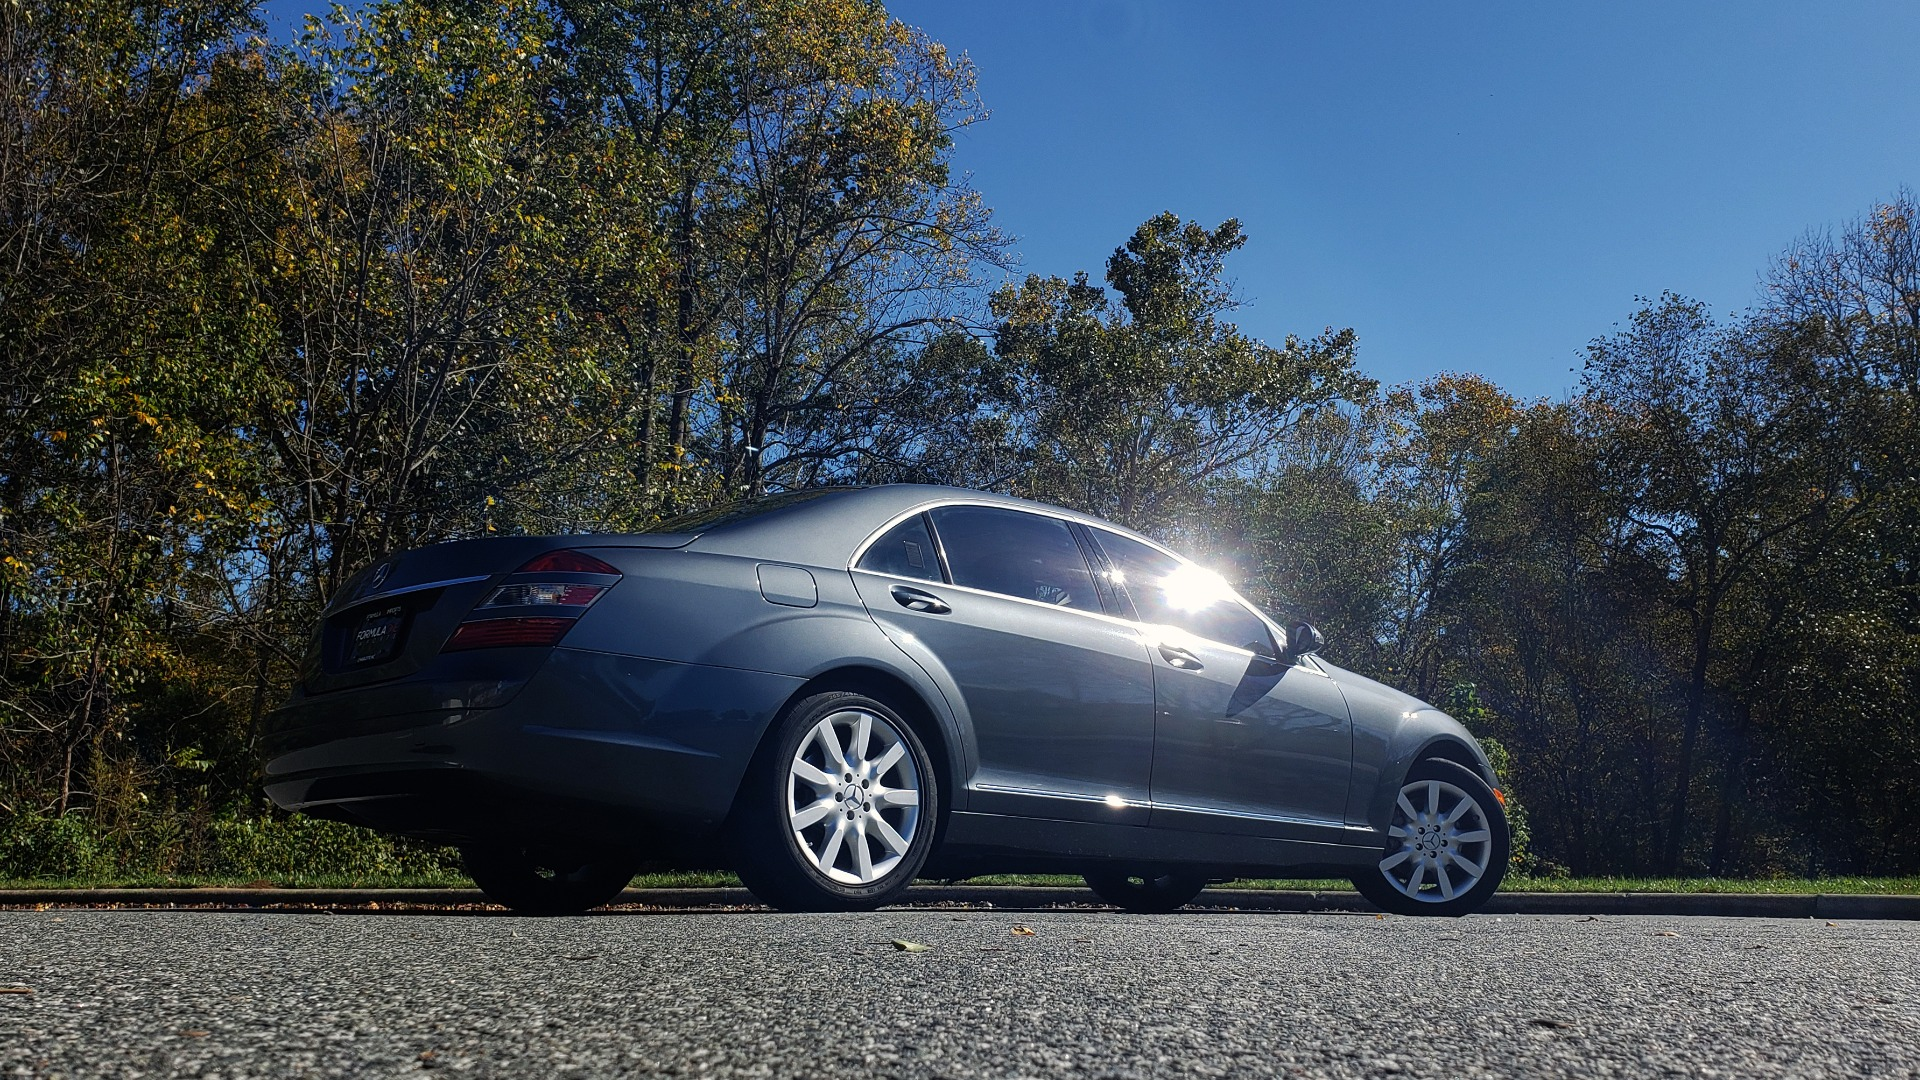 Used 2007 Mercedes-Benz S-CLASS S550 5.5L V8 / LWB / PREM 2 / NAV / SUNROOF / KEYLESS-GO for sale Sold at Formula Imports in Charlotte NC 28227 6